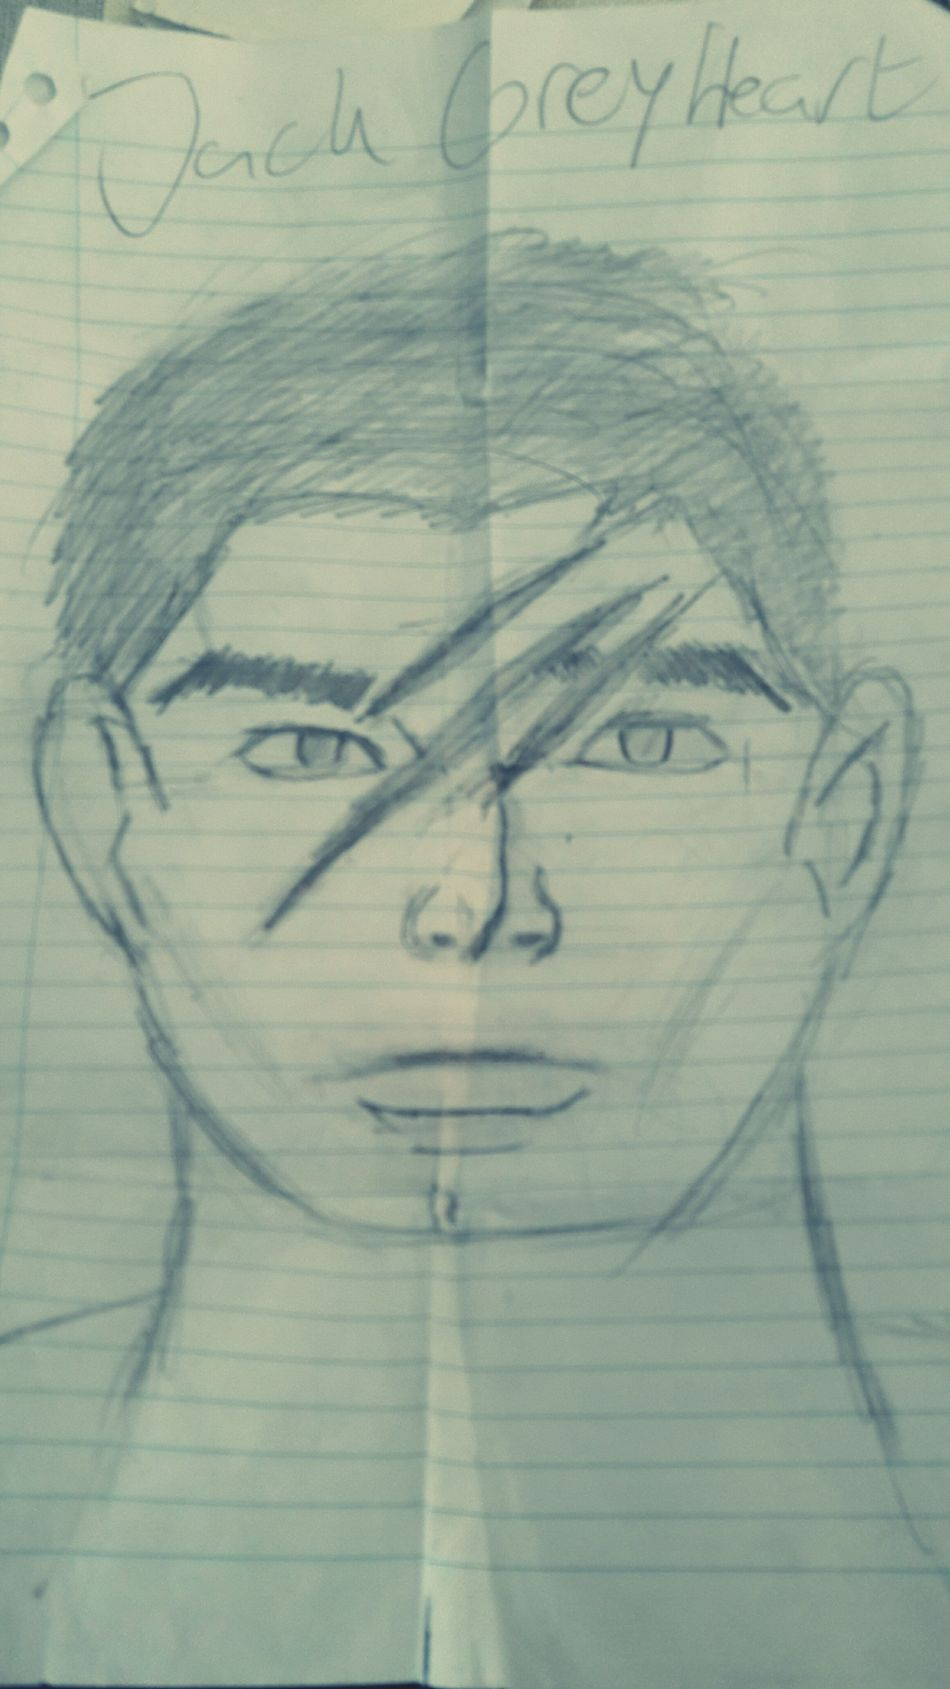 My own character: Jack GreyHeart Drawing - Art Product Pencil Drawing